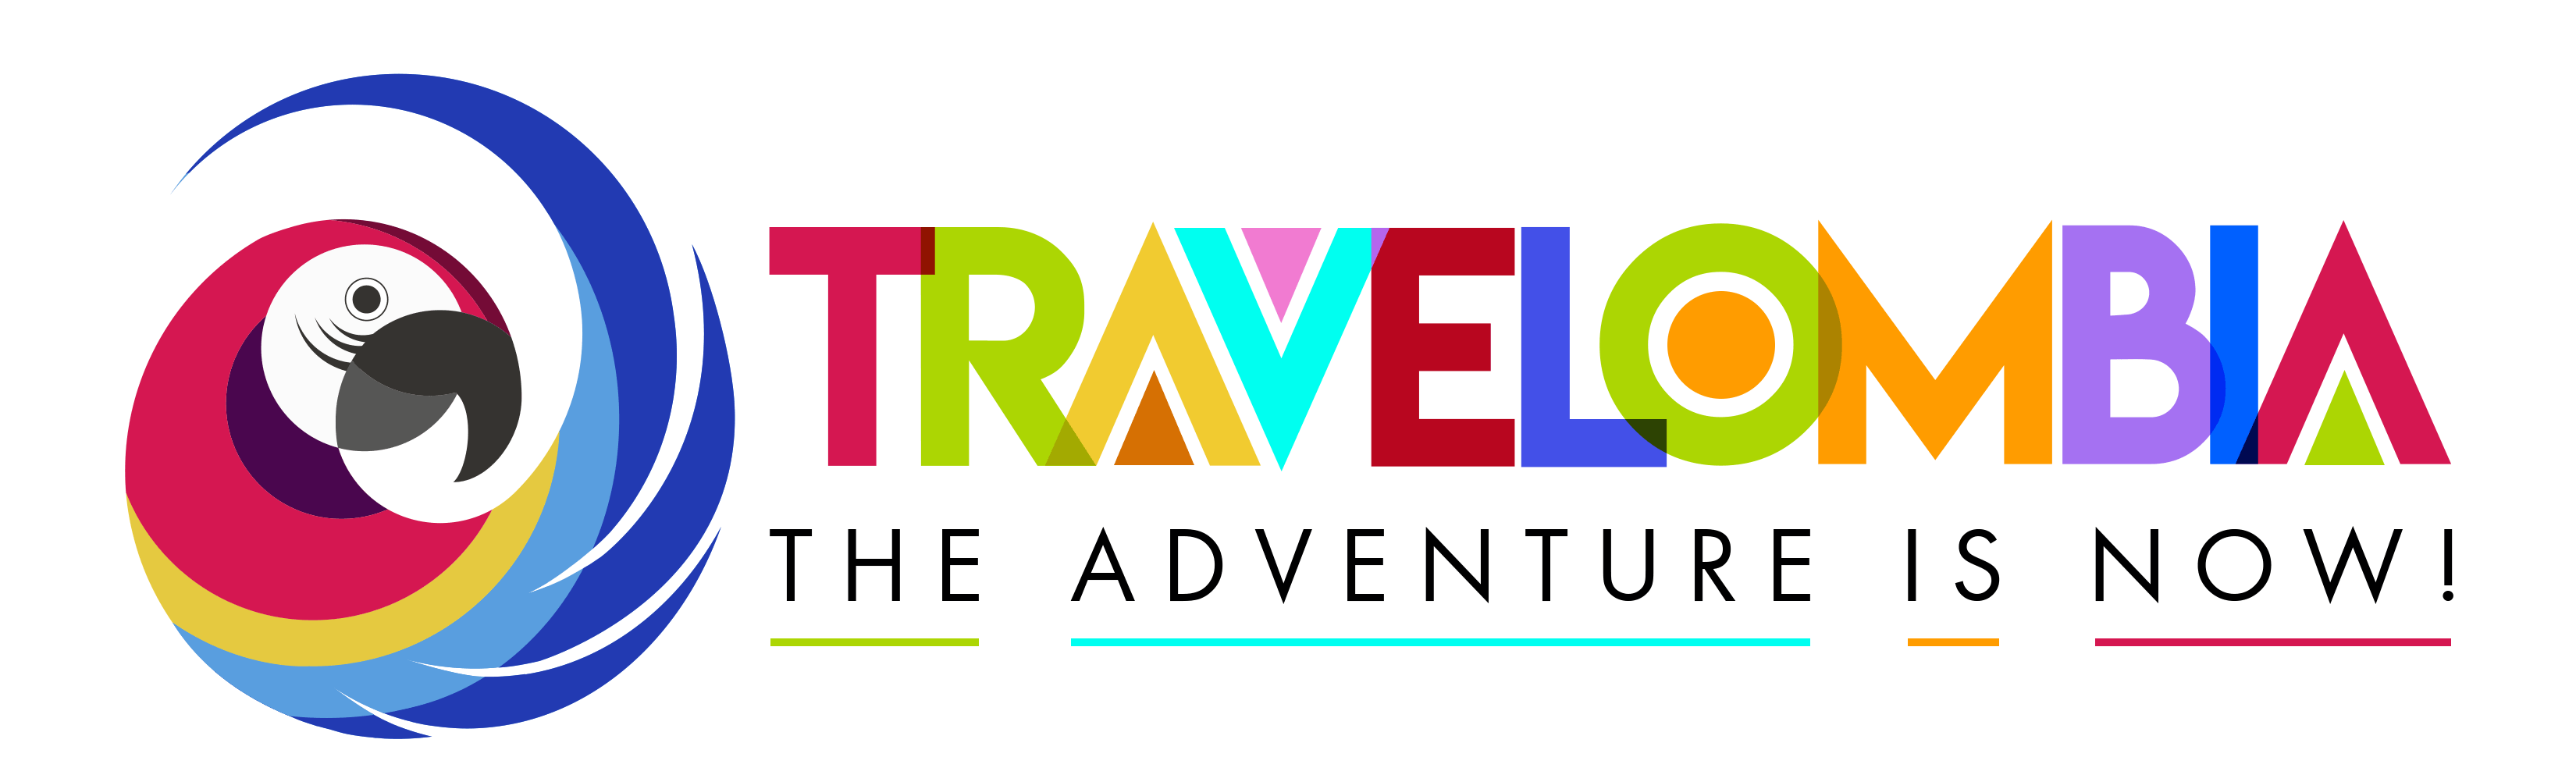 LOGO TRAVELOMBIA